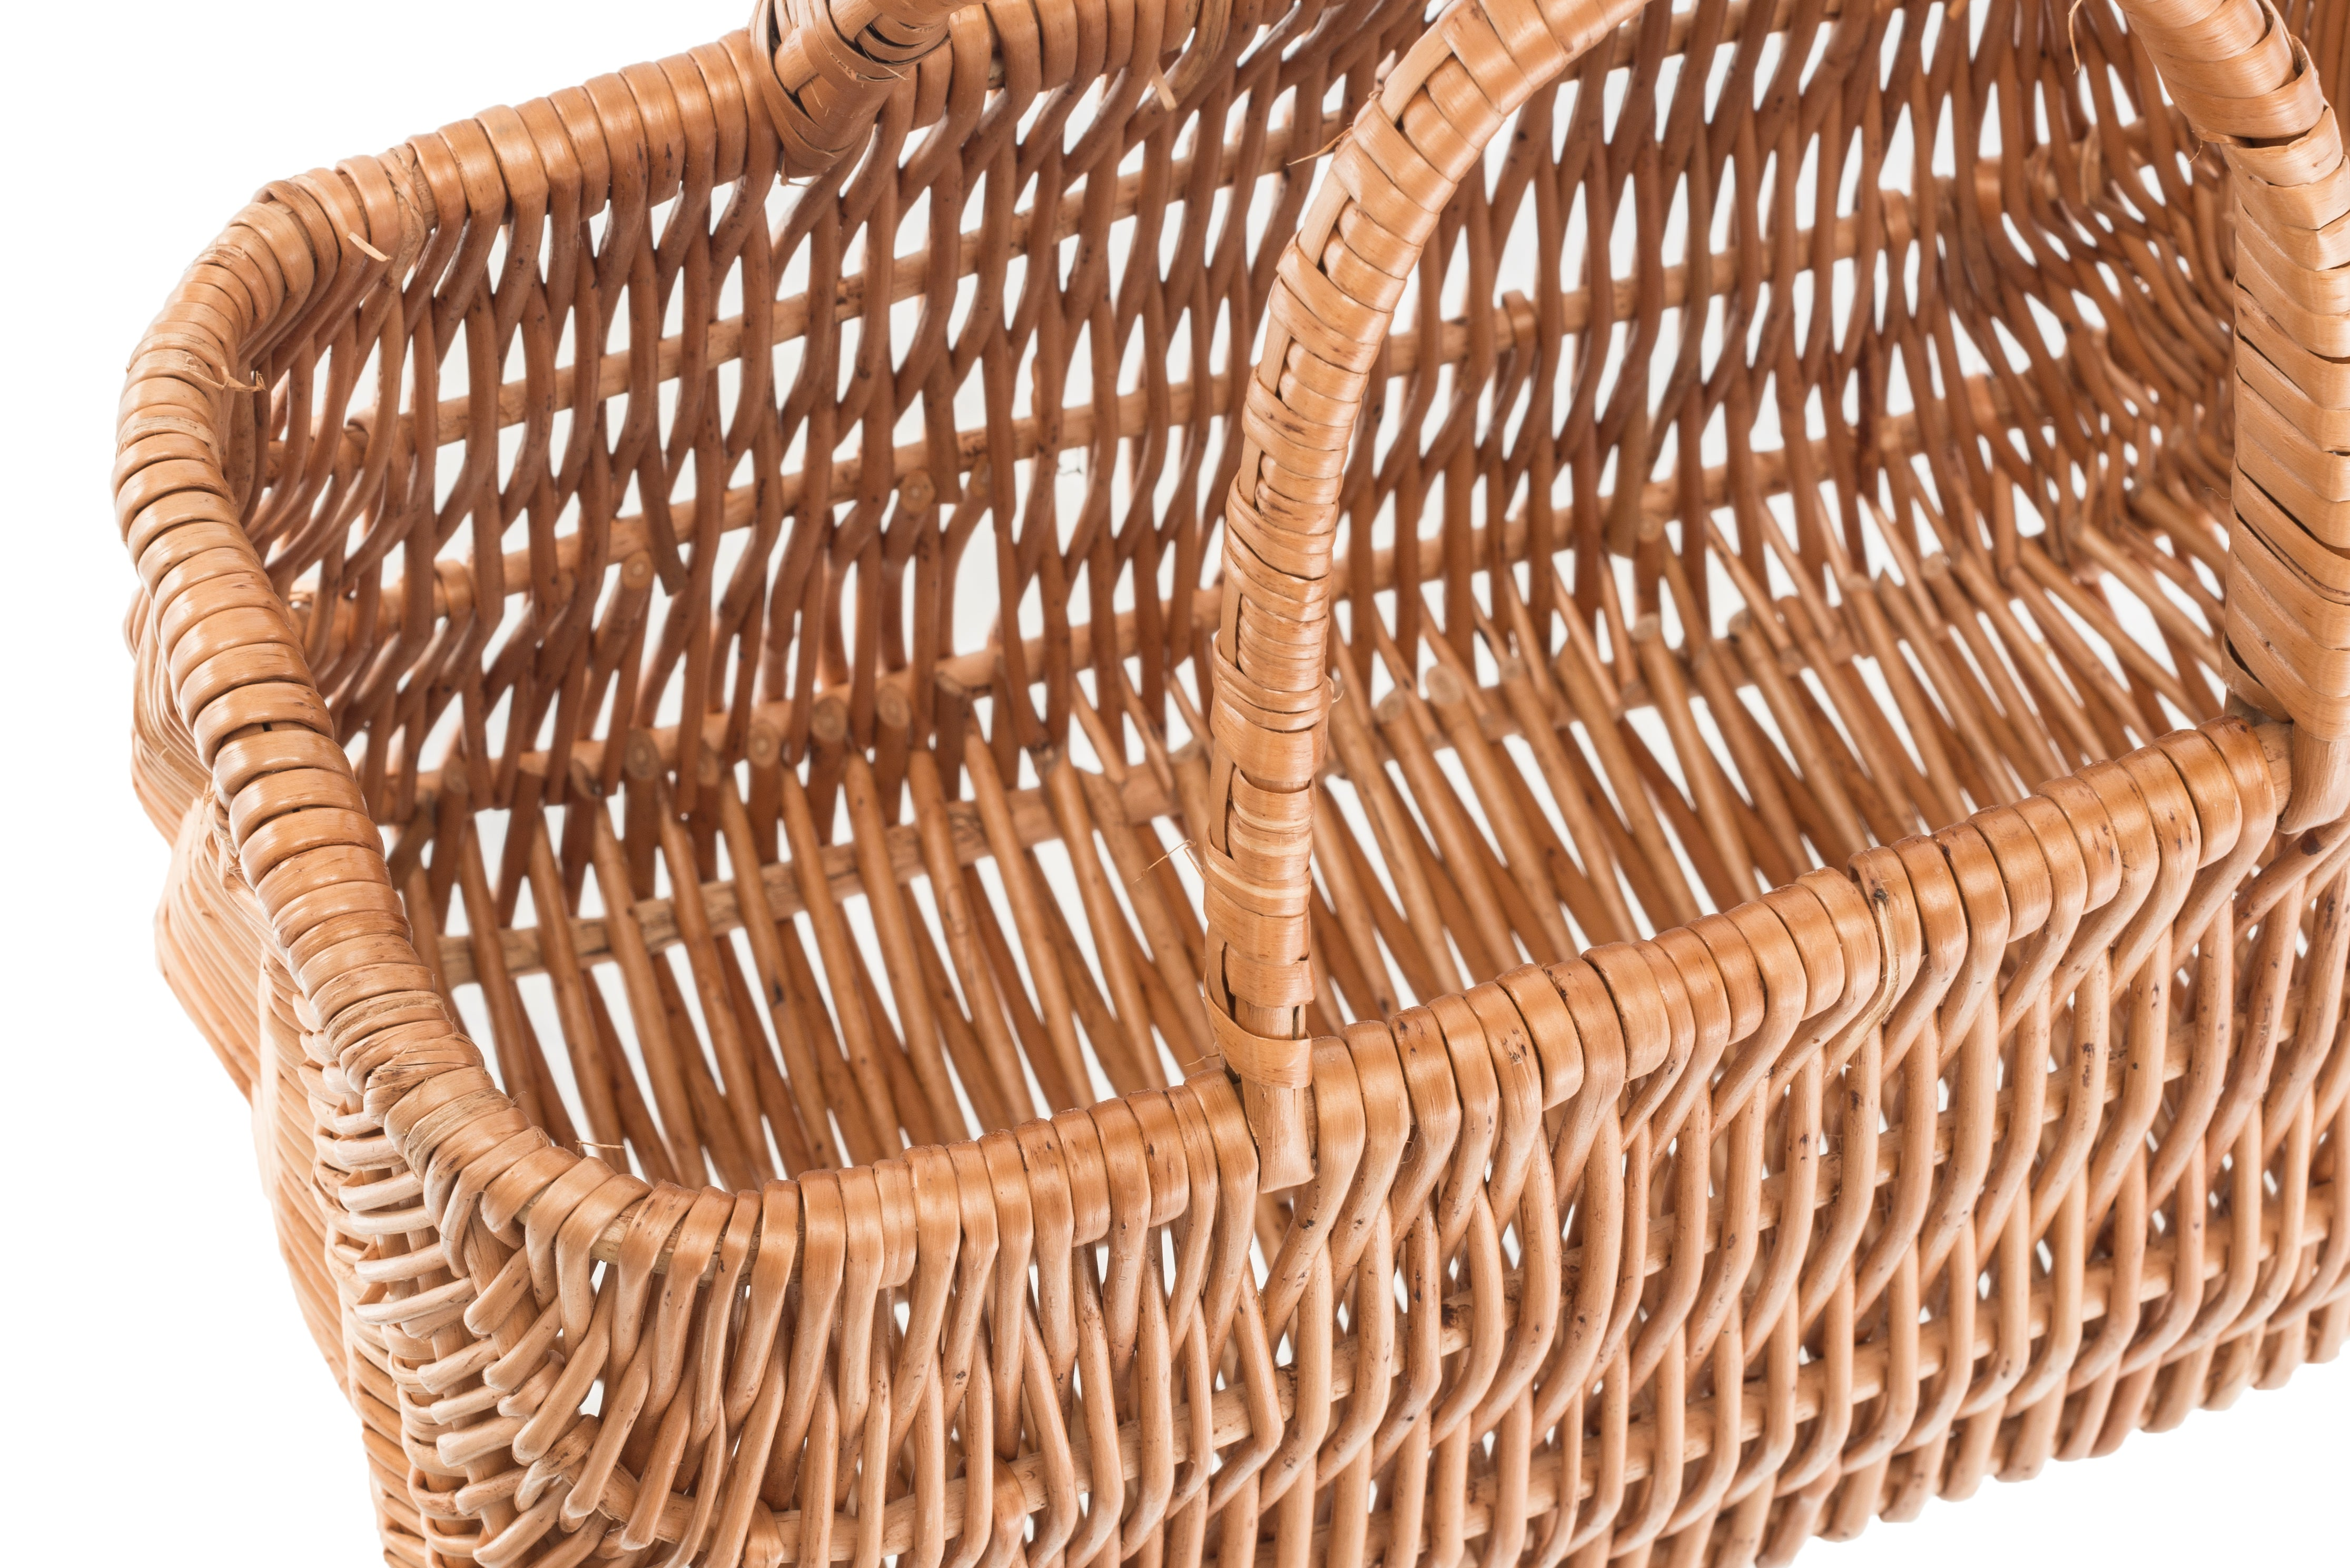 Easy to access basket contents